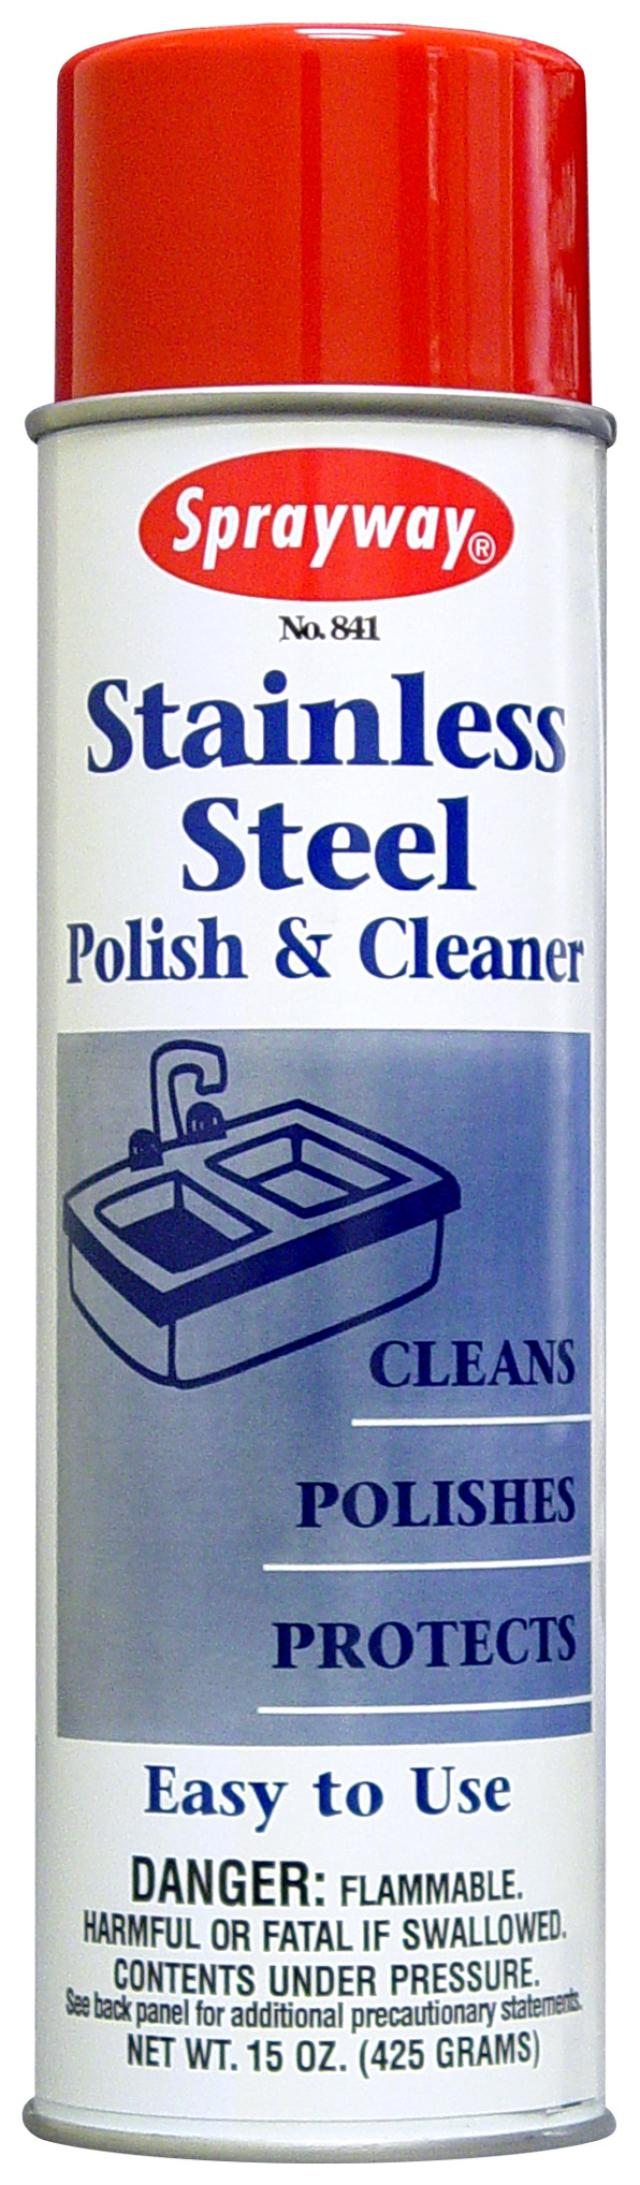 The 9 Best Stainless Steel Cleaners Of 2020 Stainless Steel Cleaners Stainless Steel Polish Cleaning Stainless Steel Appliances